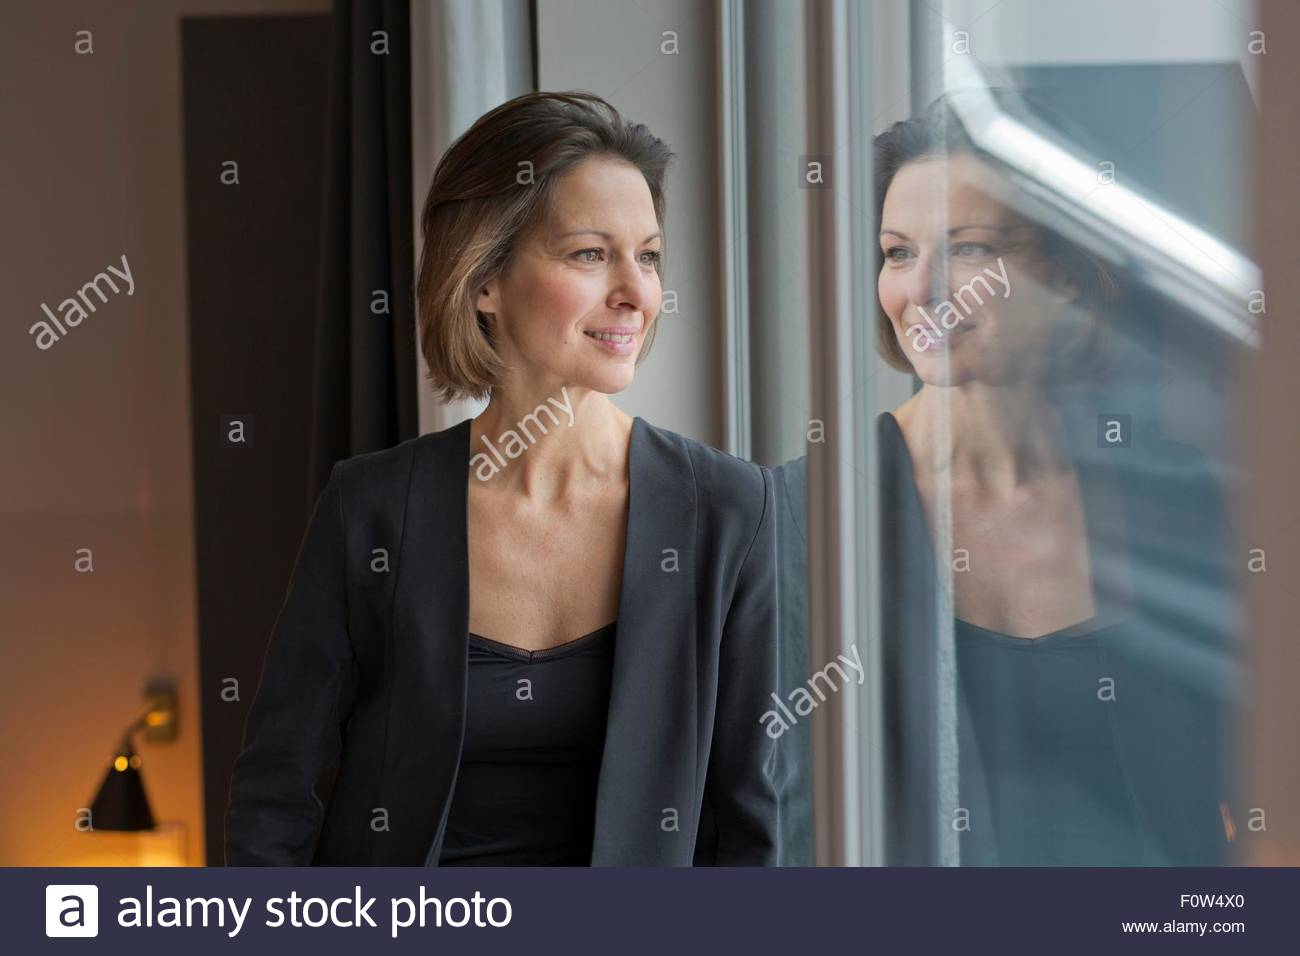 Portrait of mature woman gazing out of apartment window - Stock Image